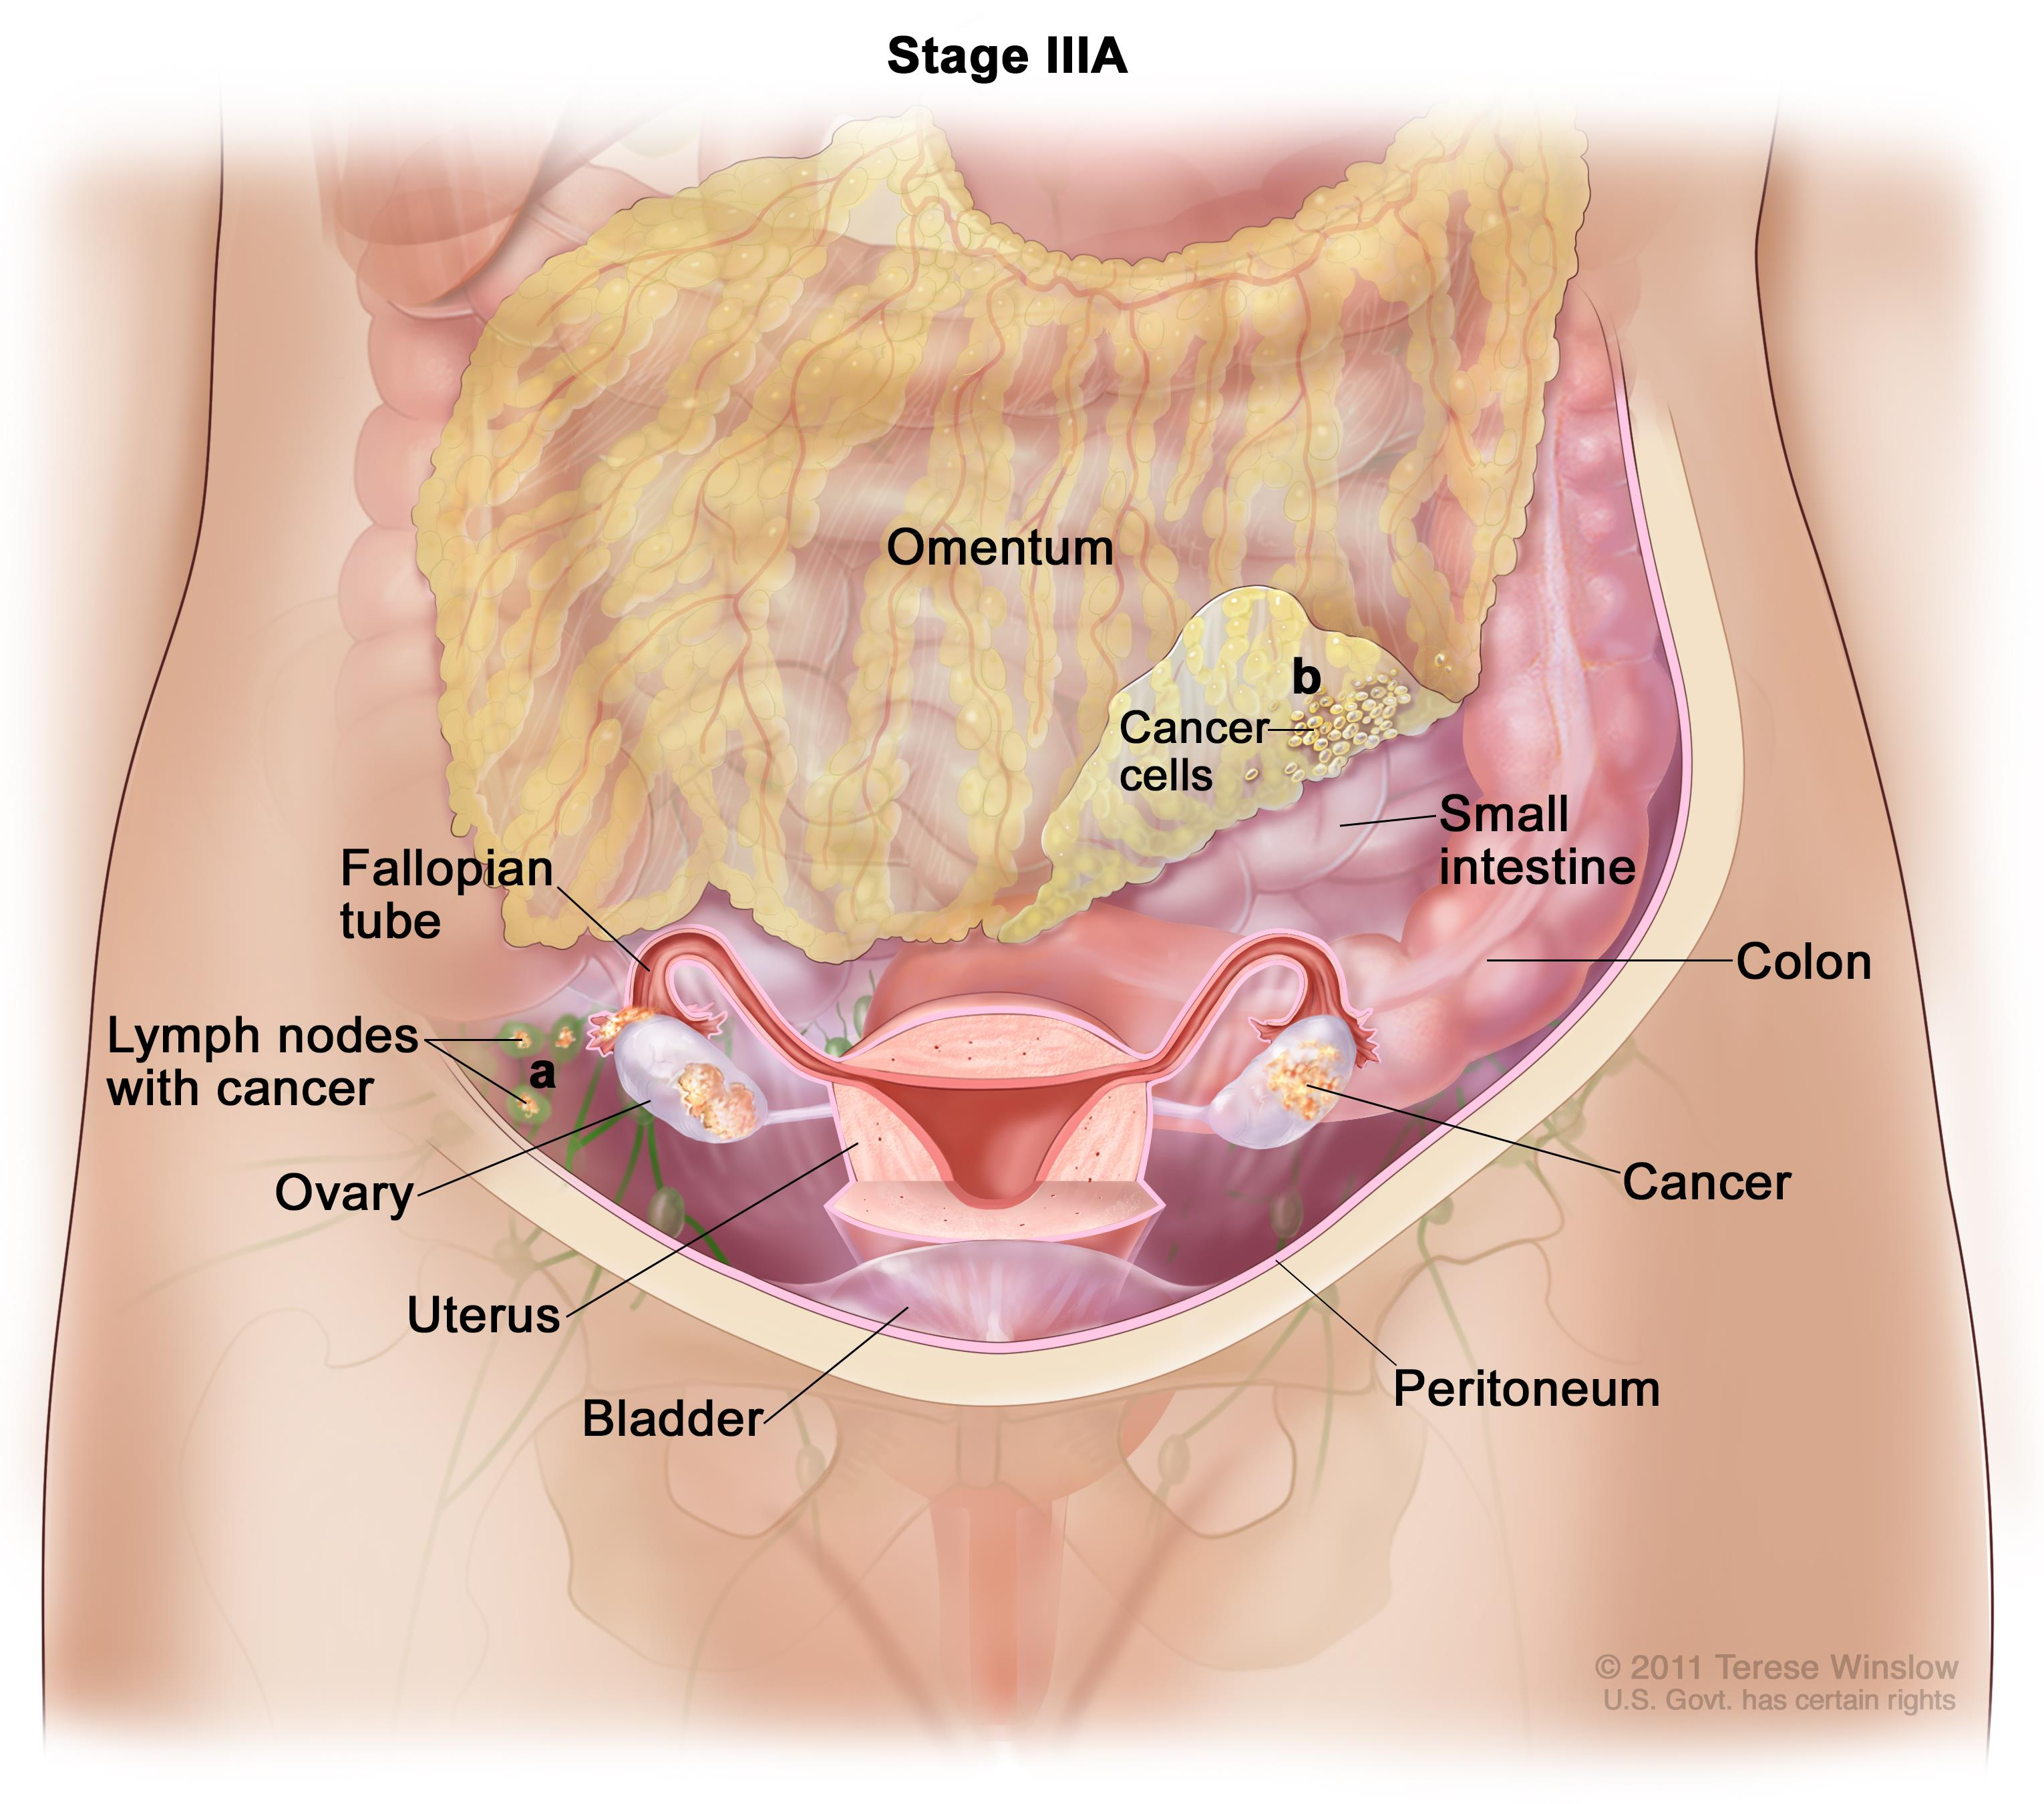 Ovarian germ cell tumors treatment pdqpatient version enlarge drawing of stage iiia shows cancer biocorpaavc